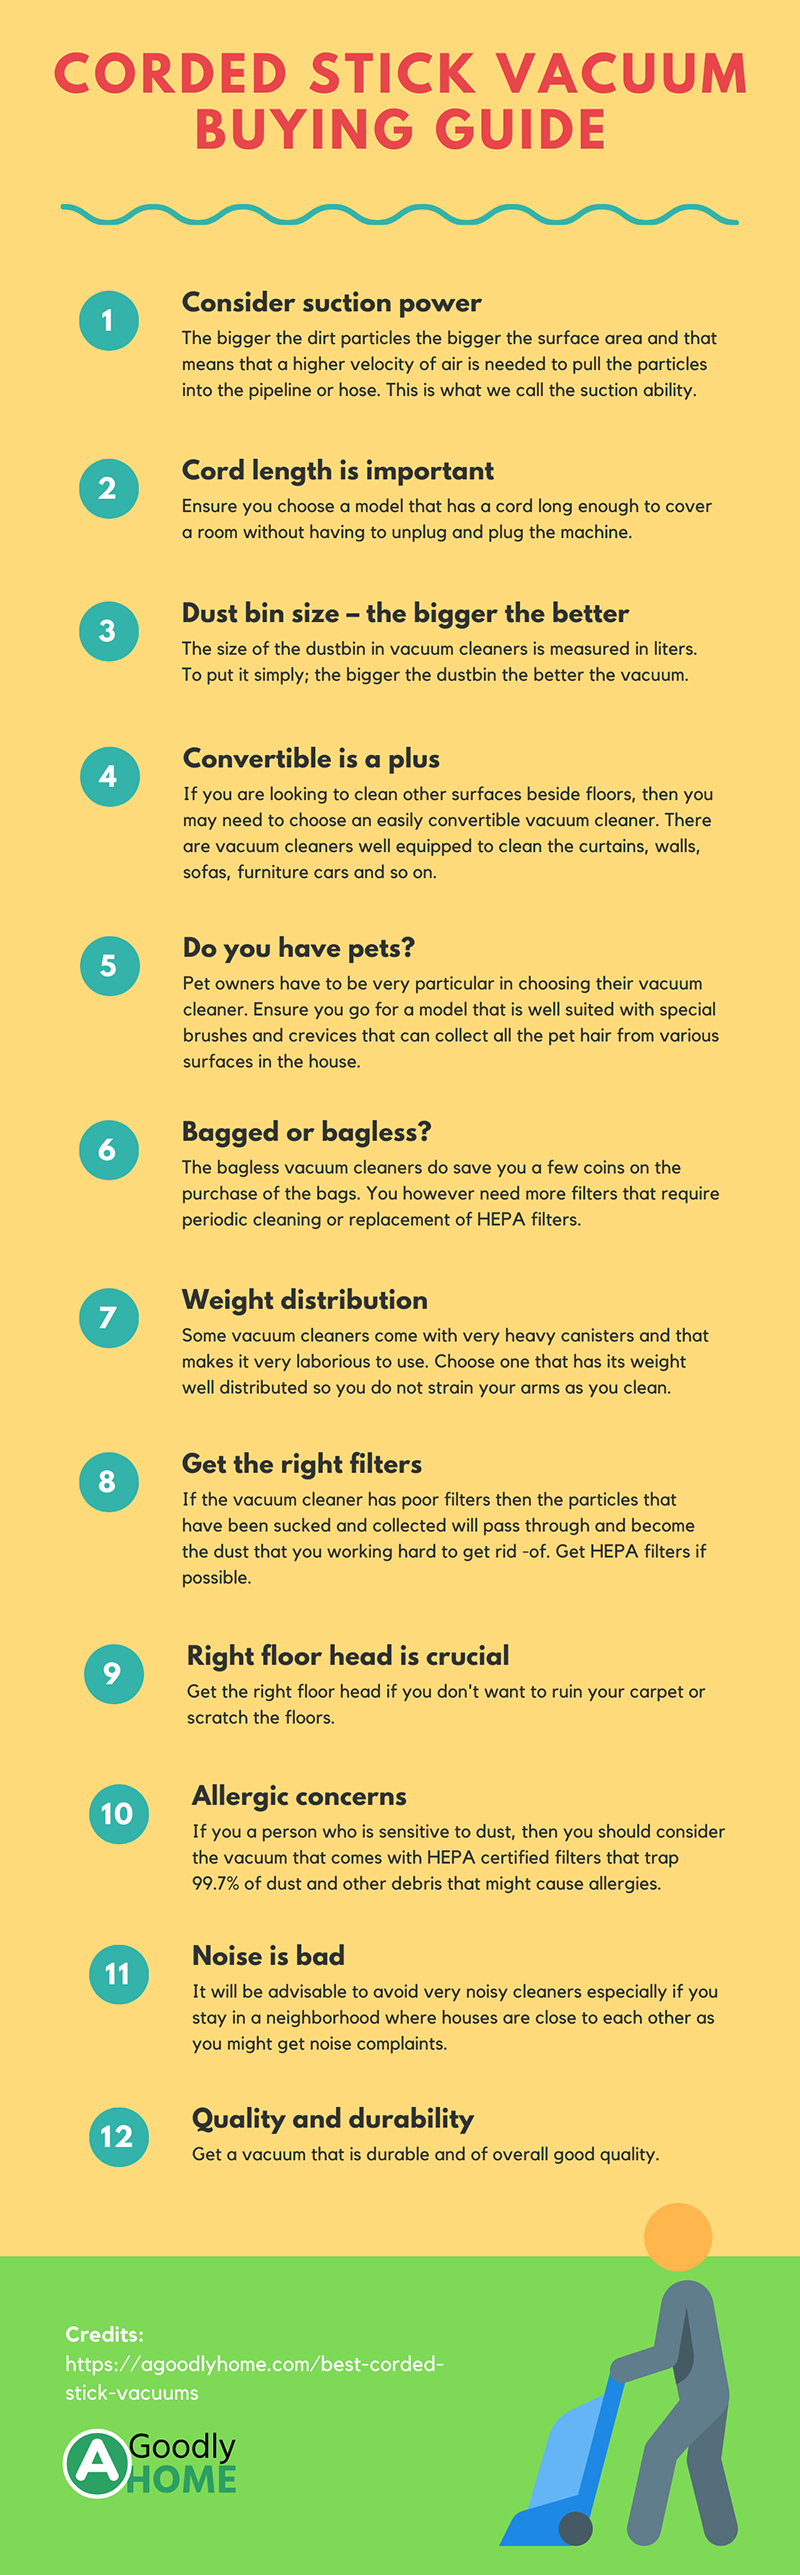 corded stick vacuum buying guide - infographic